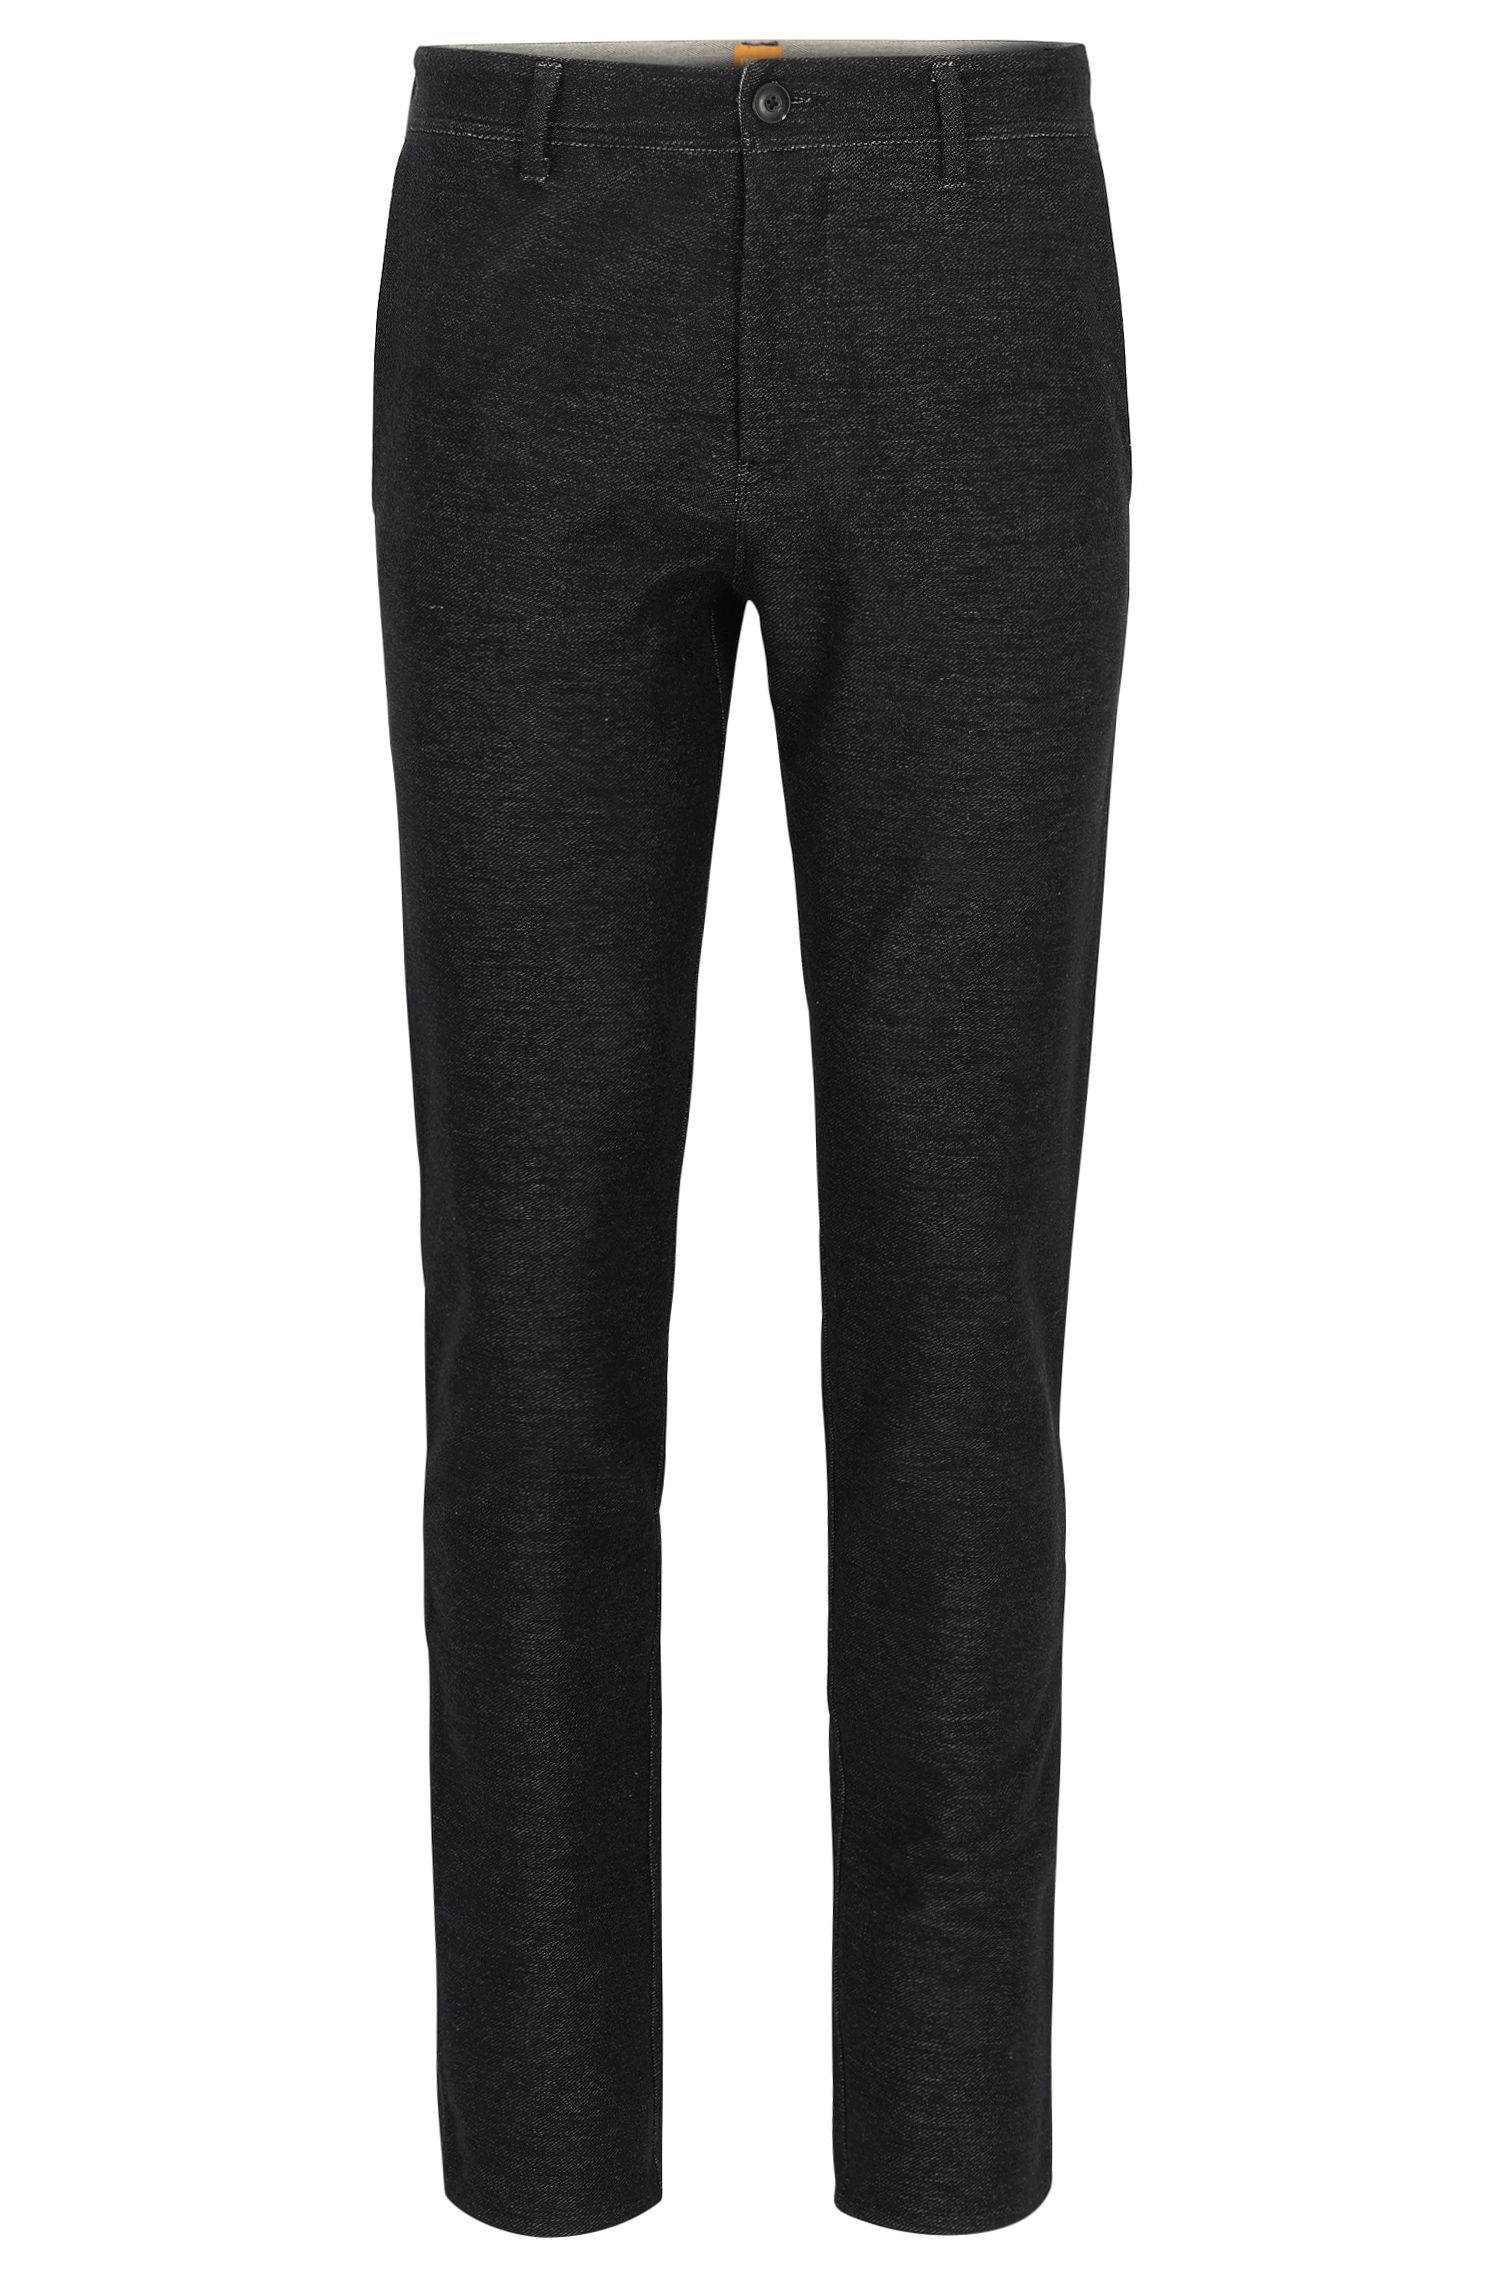 Stretch Jersey Pant, Tapered Fit | Symba